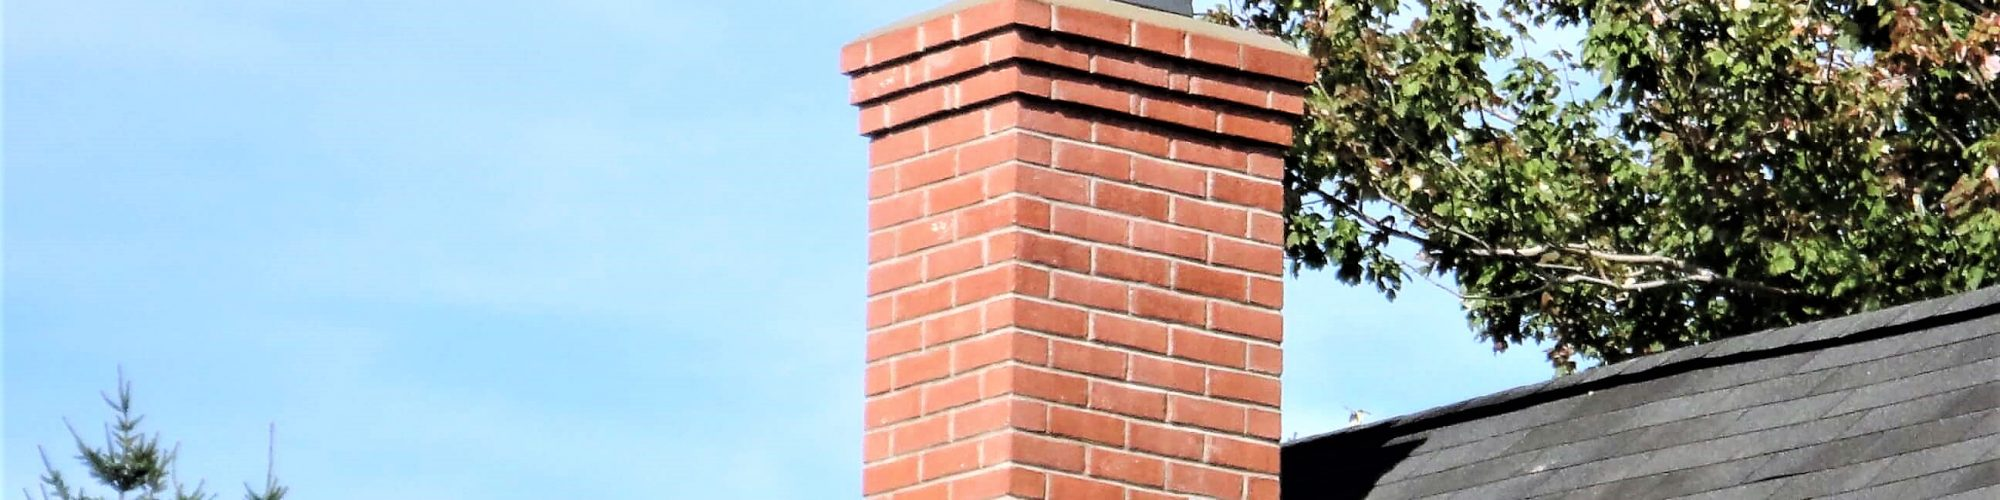 Chimney Repairs and Re-building